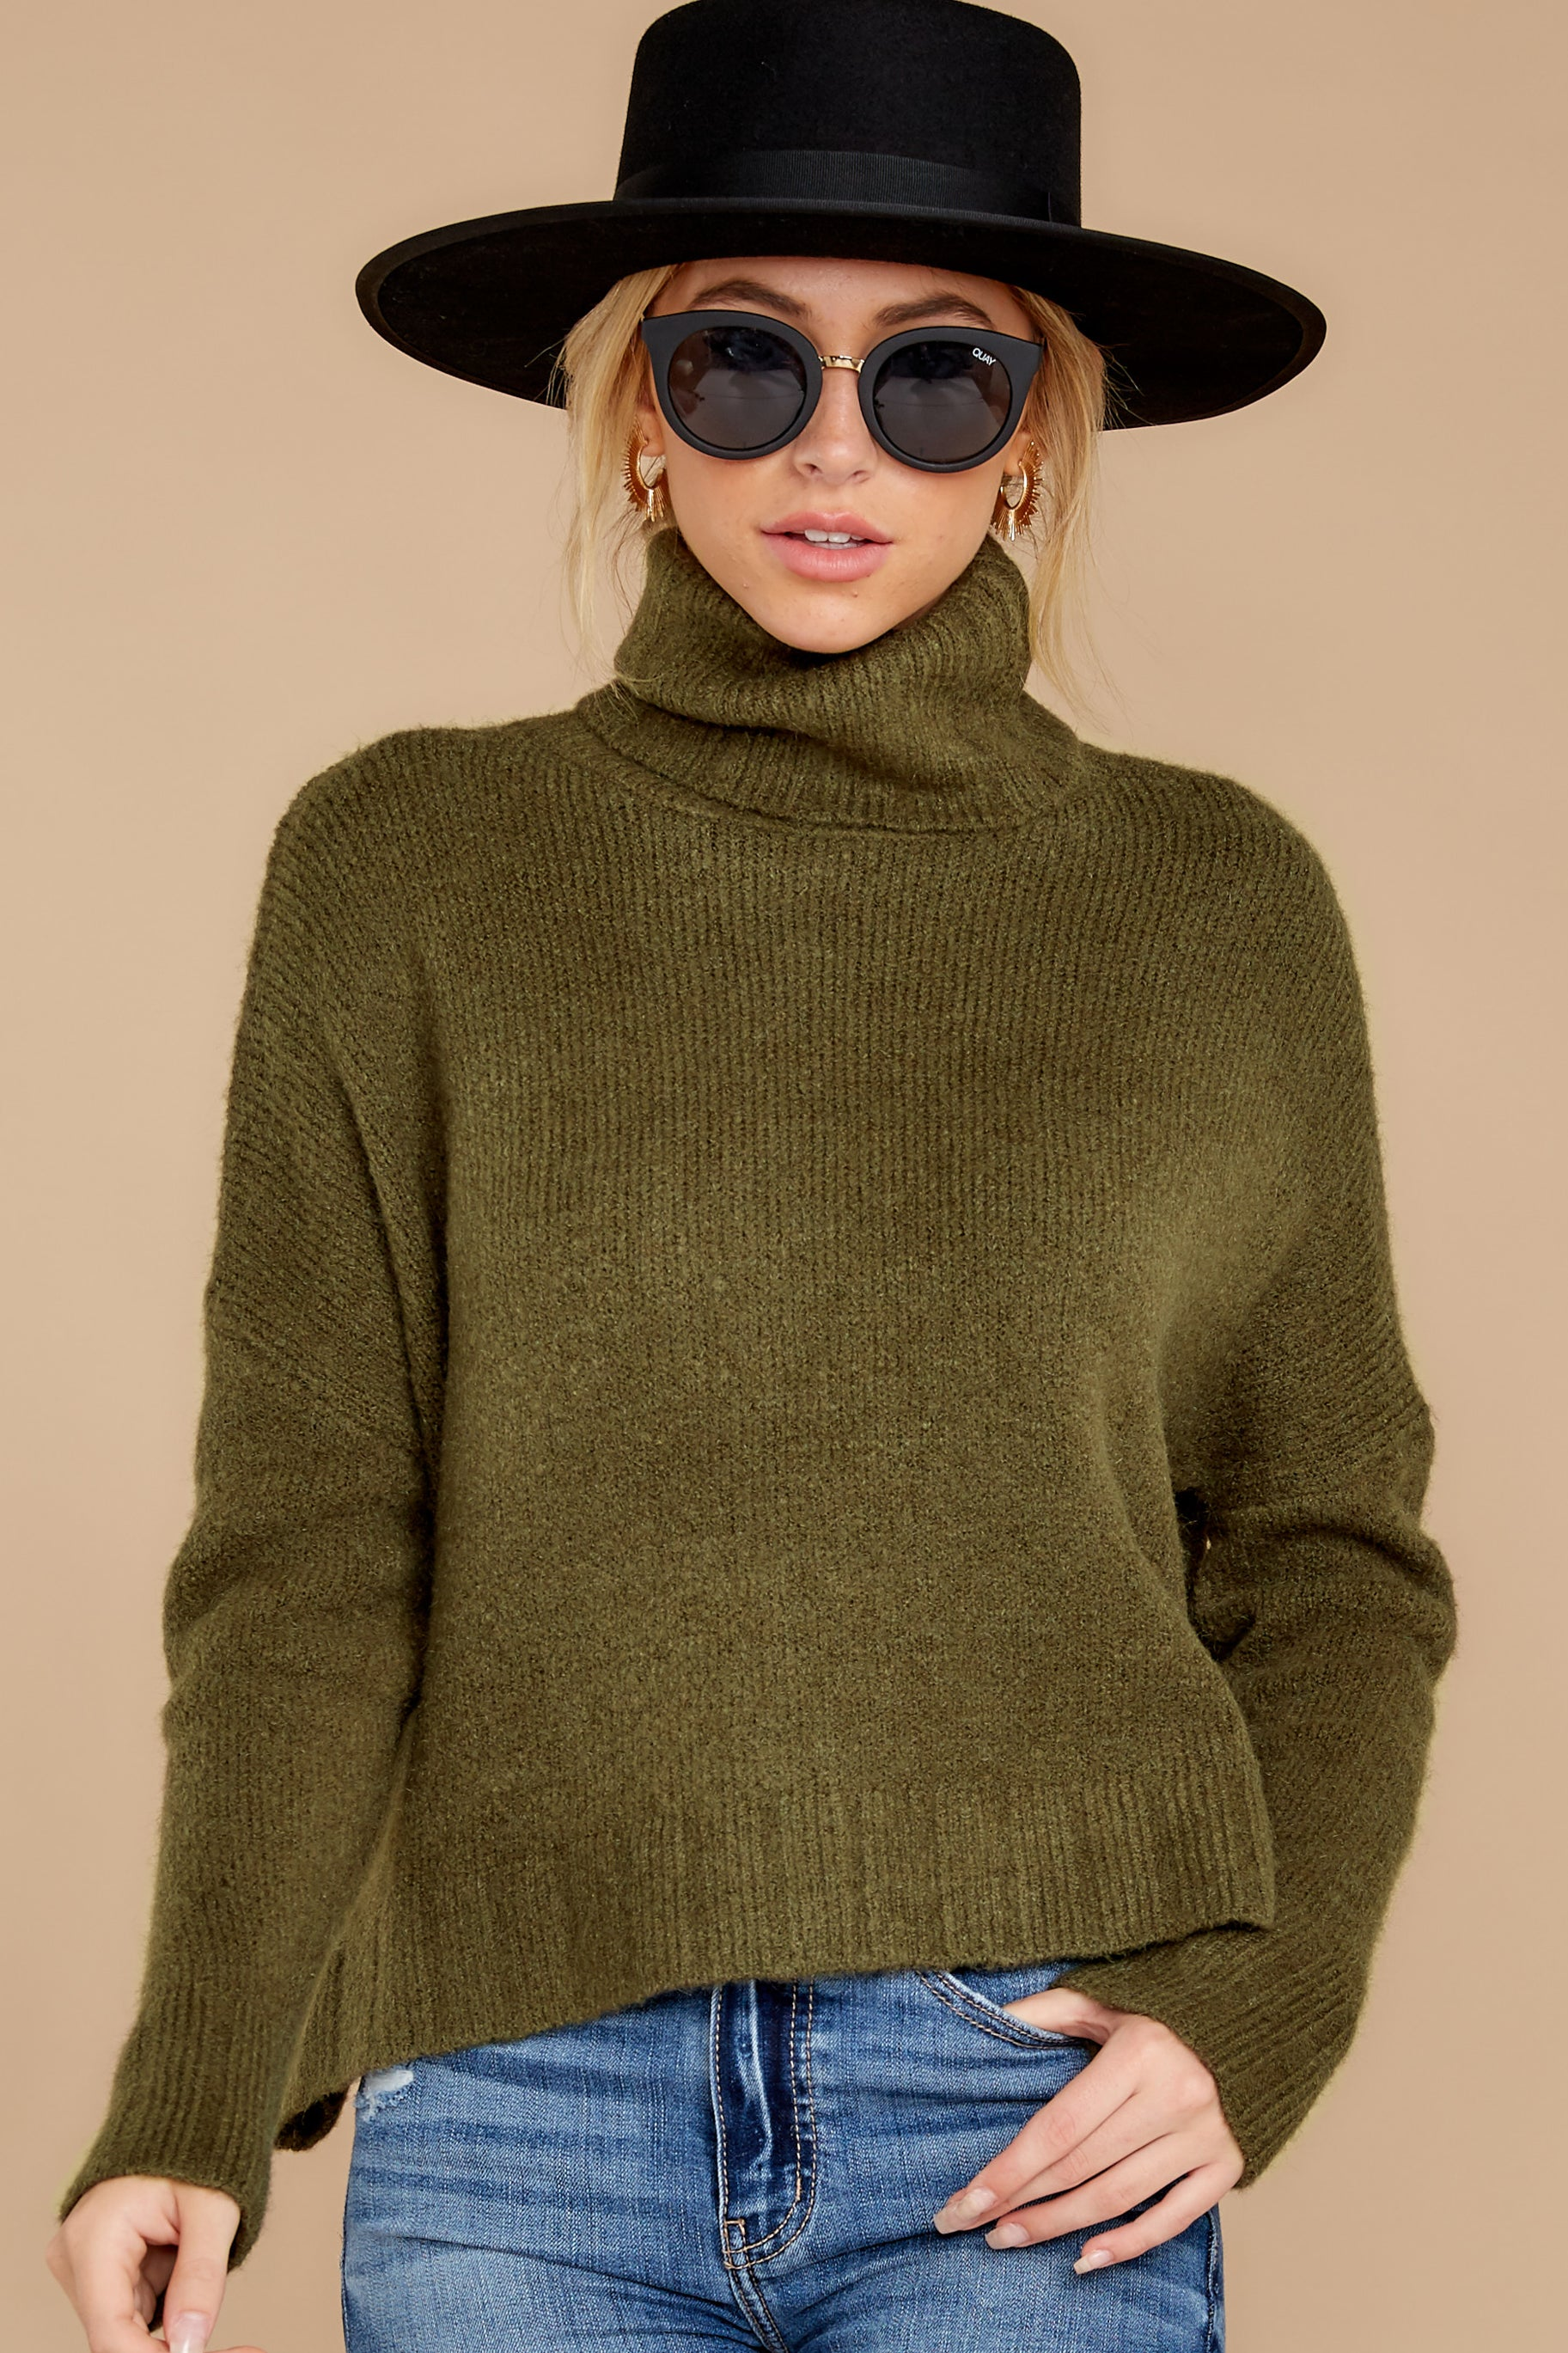 5 Say Anything Olive Green Turtleneck Sweater at reddress.com